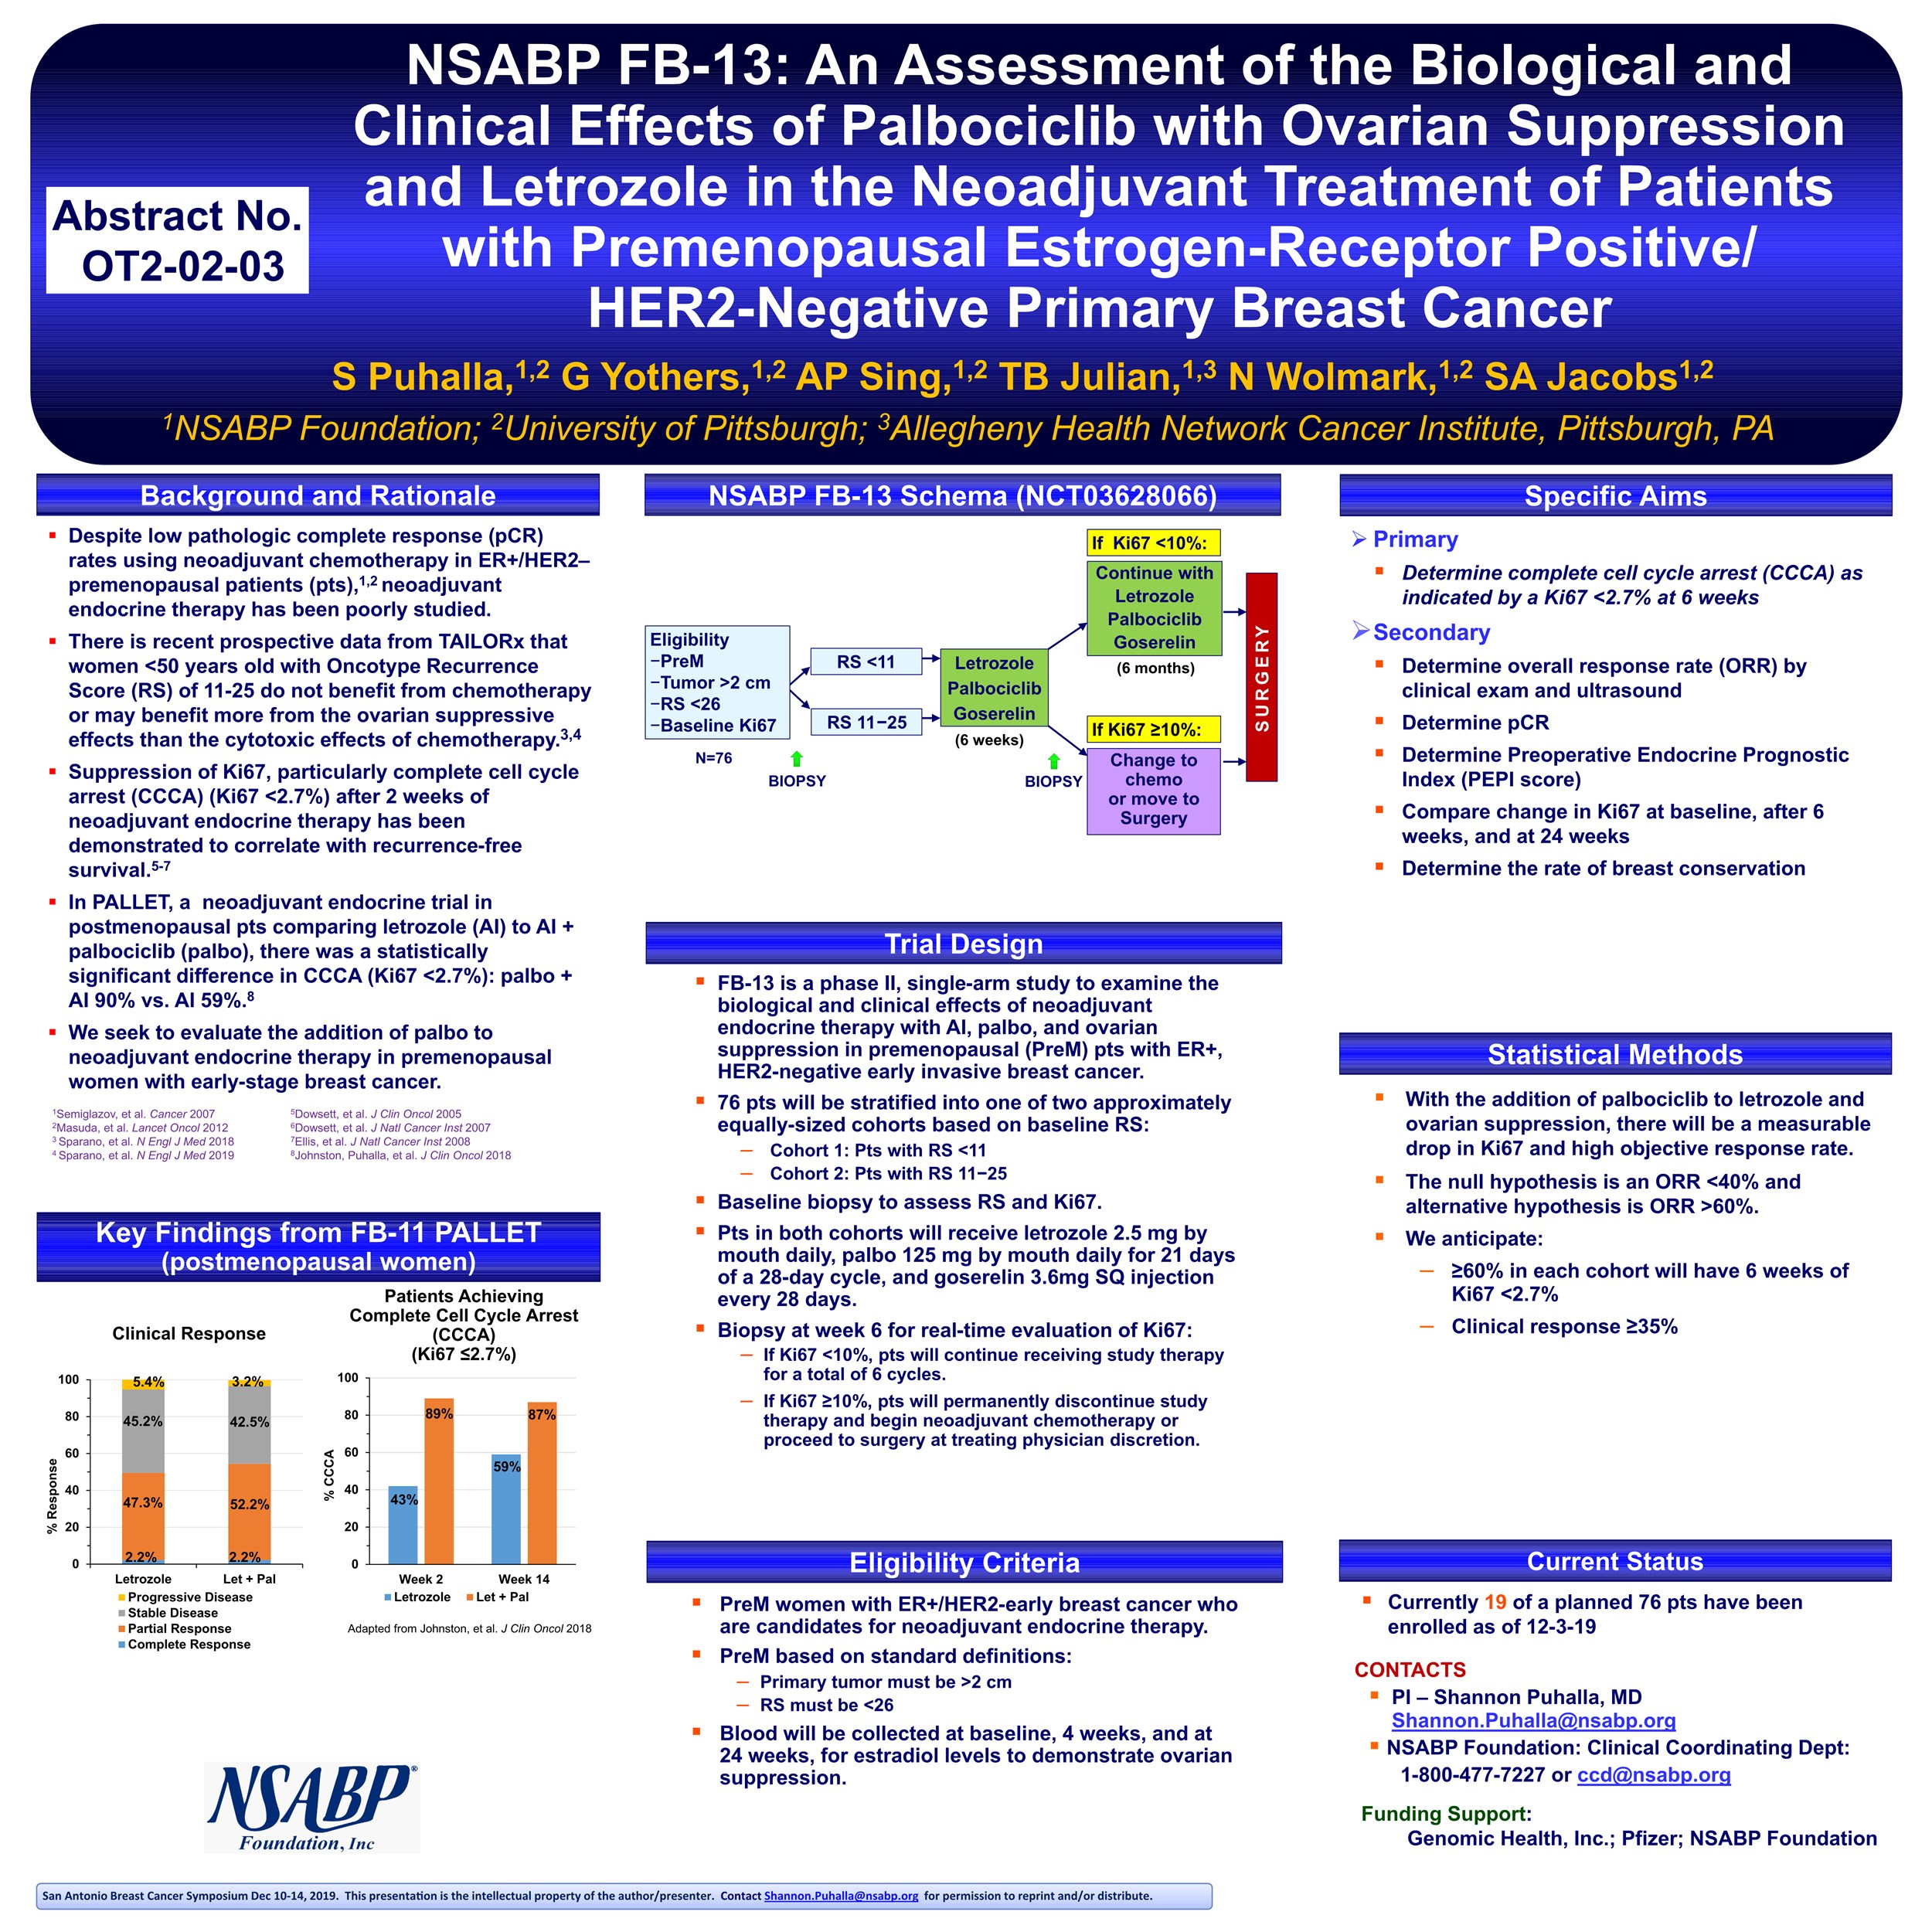 NSABP FB-13: An assessment of the biological and clinical effects of palbociclib with ovarian suppression and letrozole in the neoadjuvant treatment of pts (pts) with premenopausal (preM) estrogen-receptor positive/HER2-negative primary breast cancer